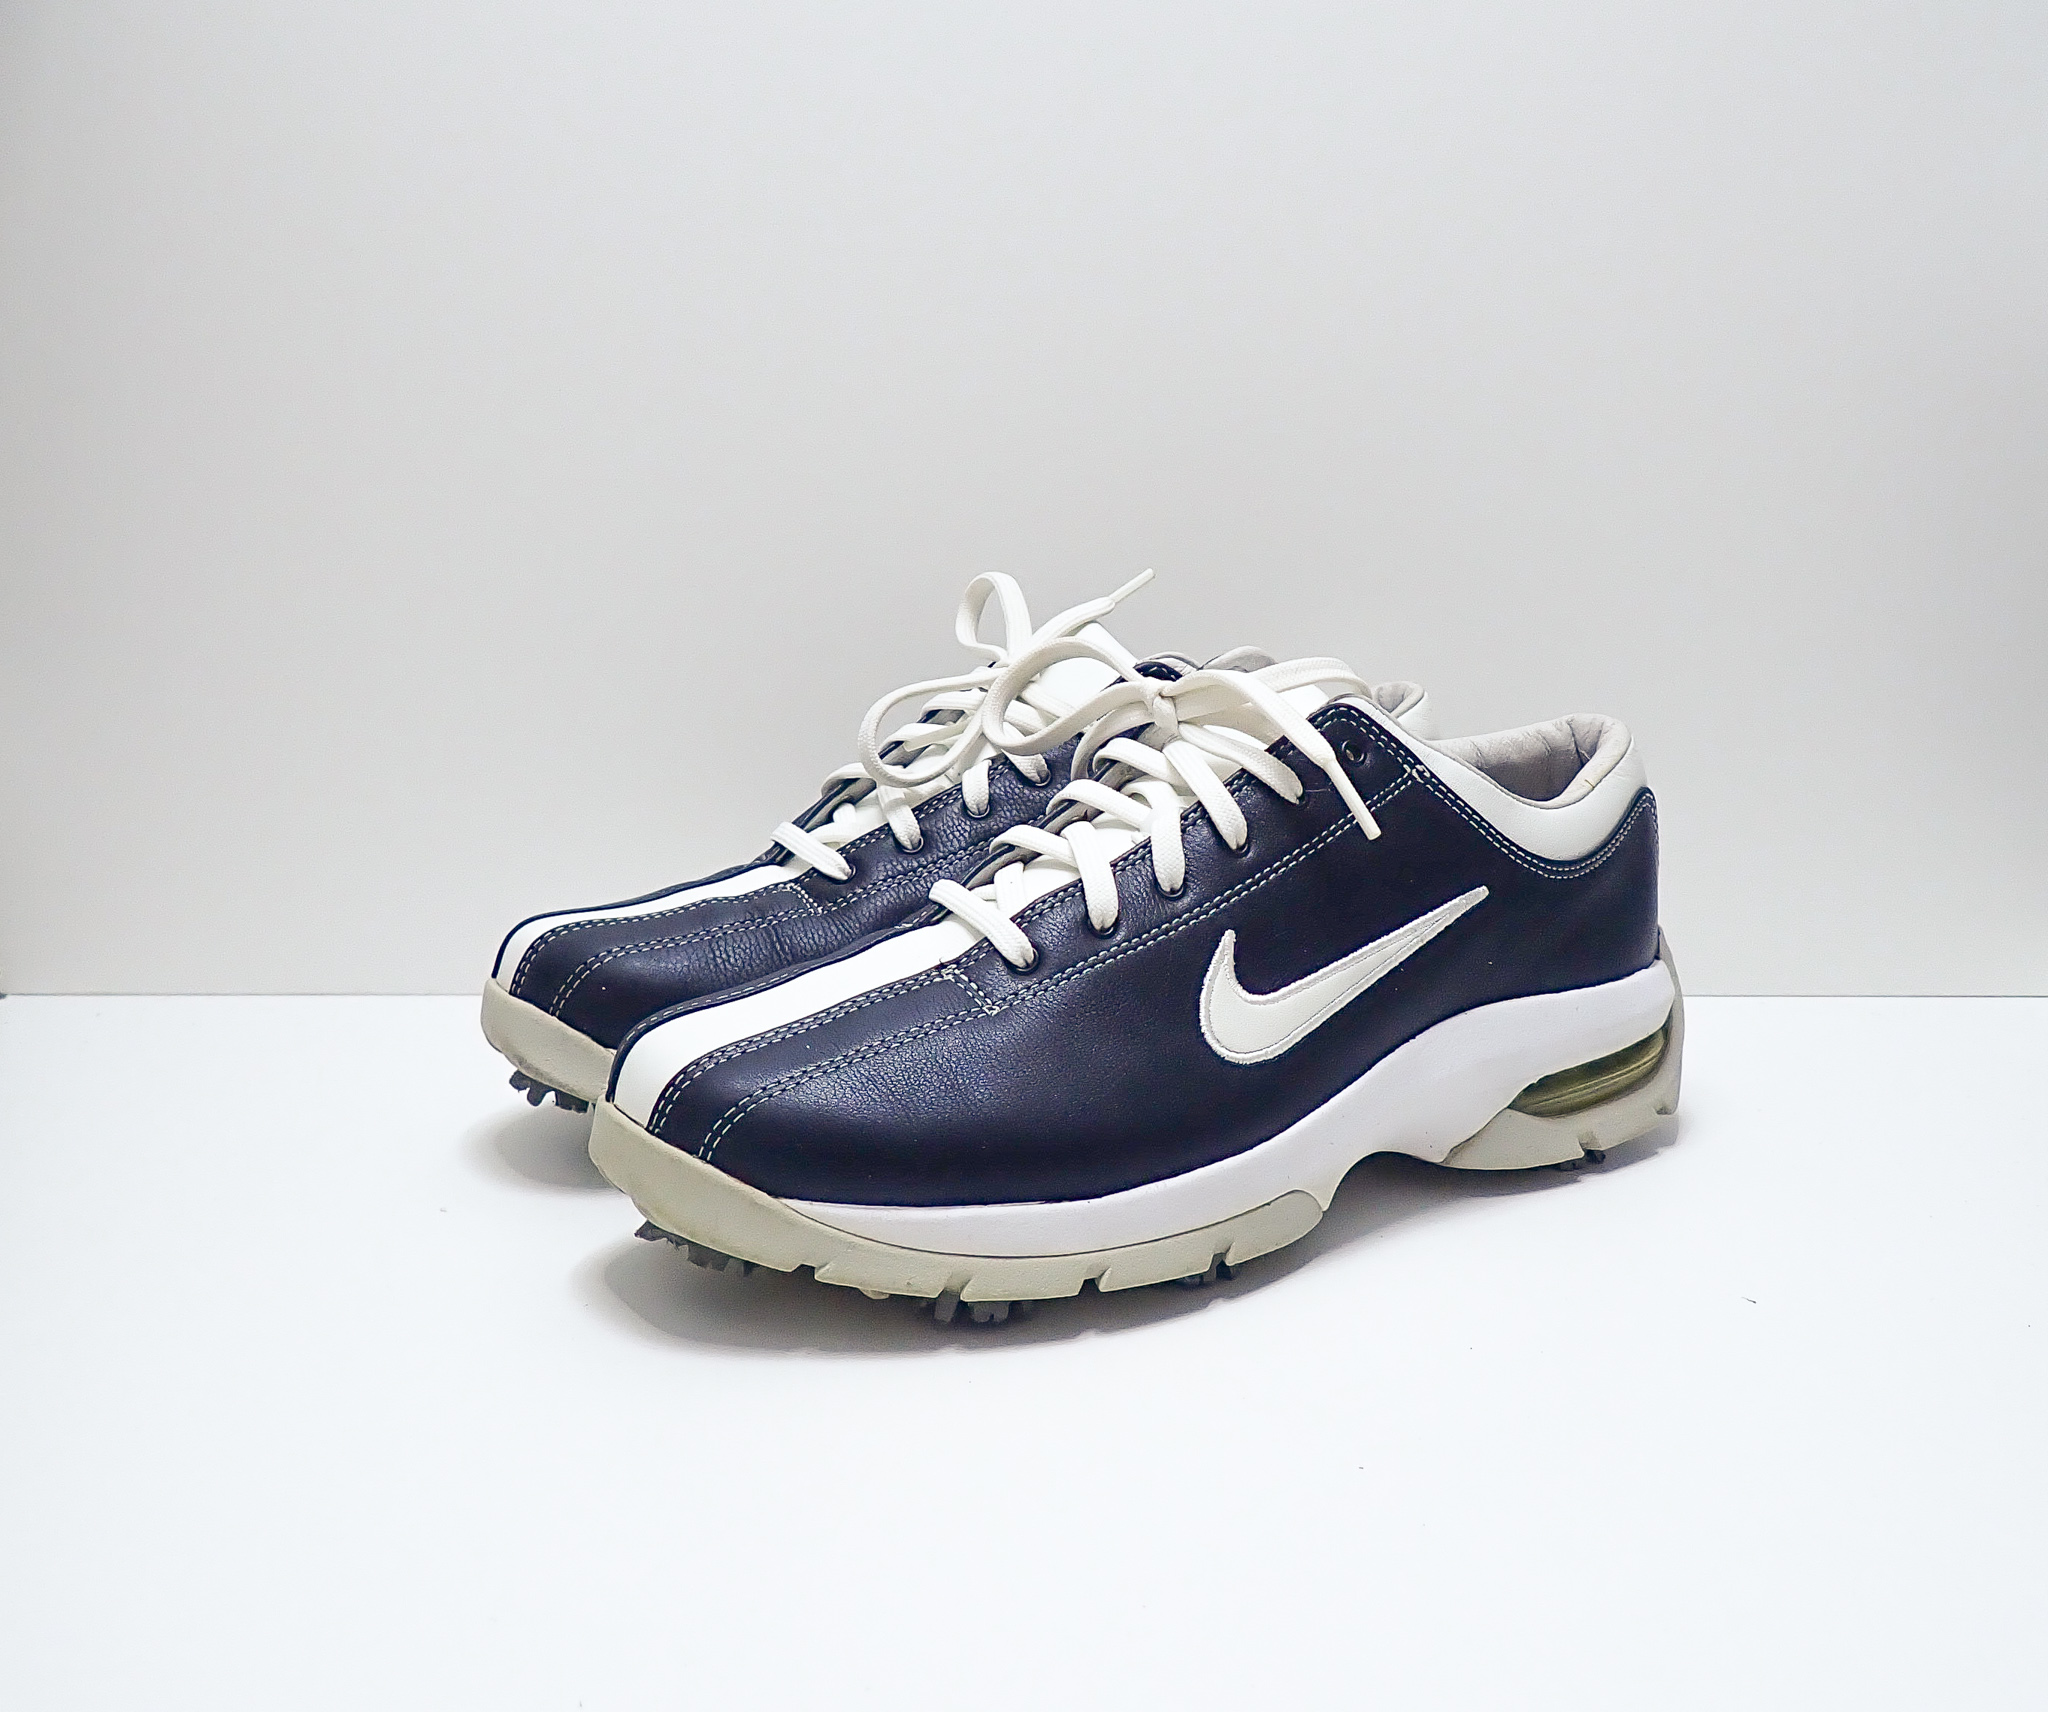 Nike Sports Performance SP 5